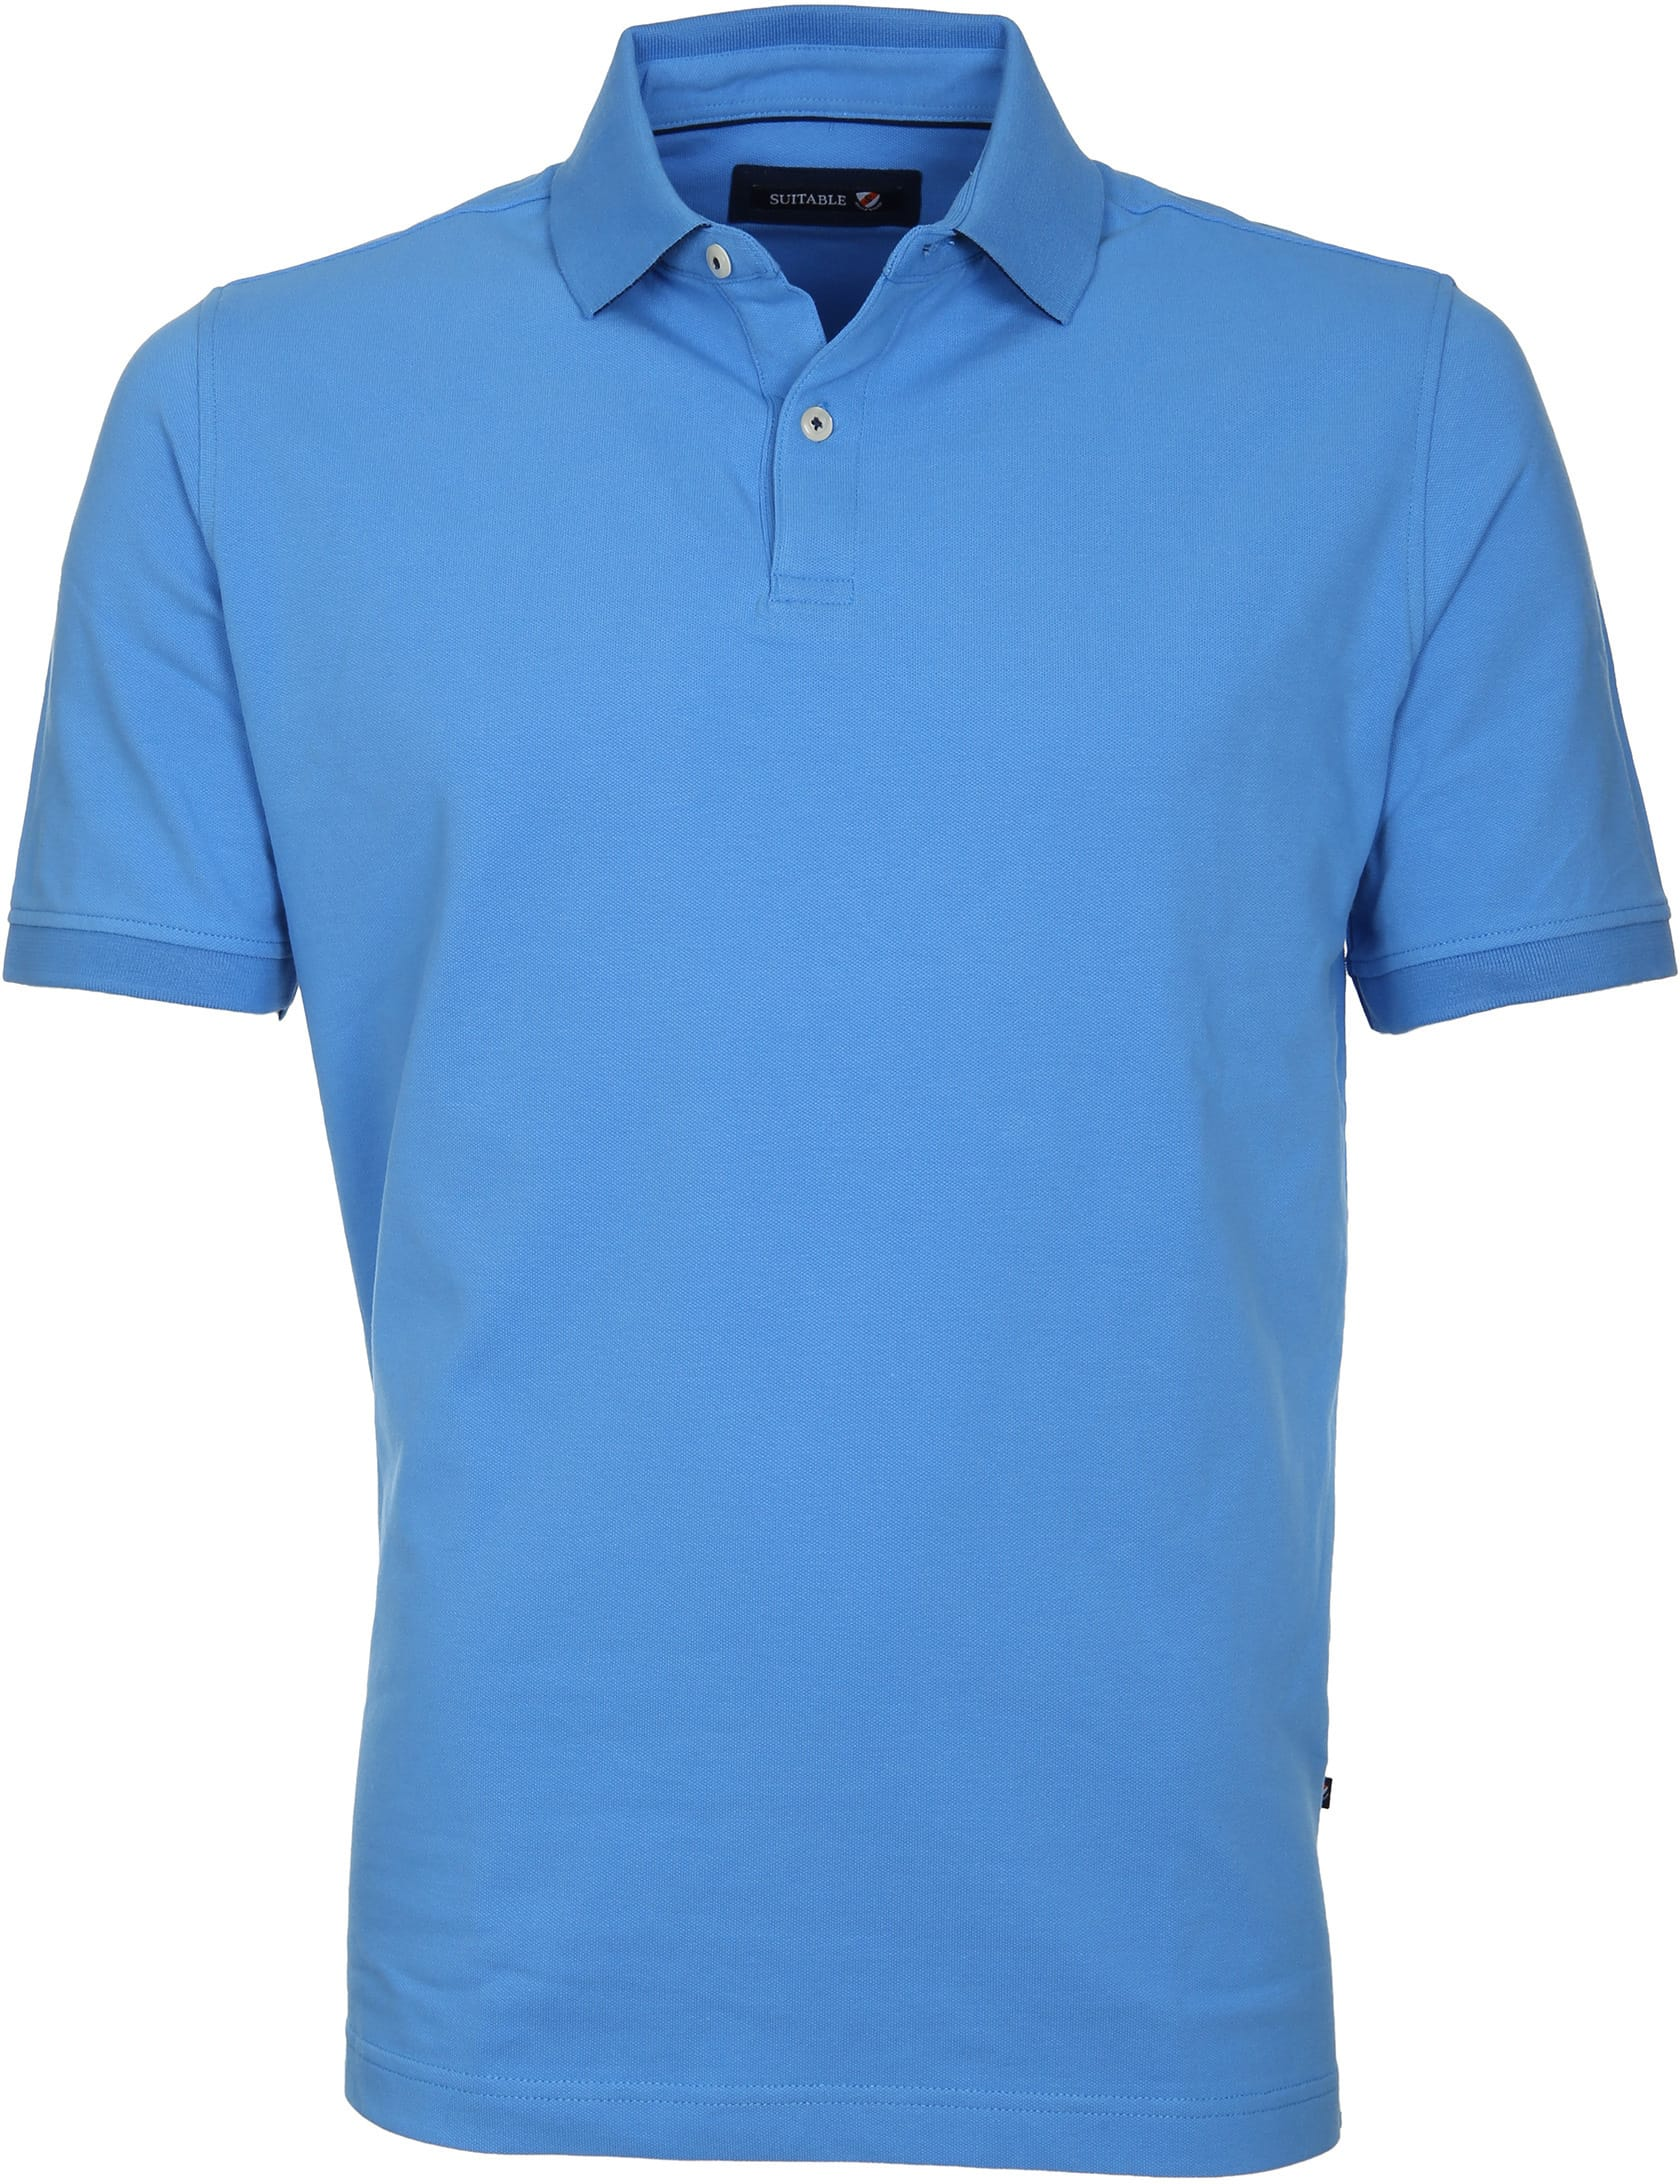 Suitable Poloshirt Basic Blau foto 0